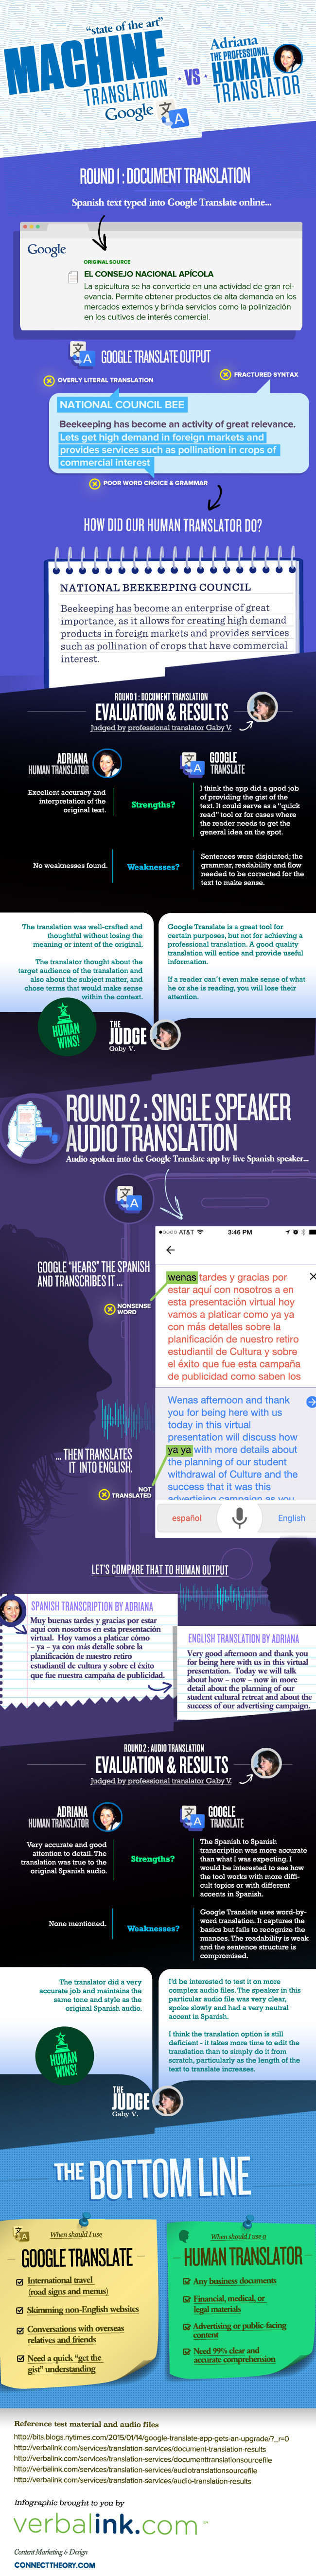 Infographic comparing Google Translate to human translator